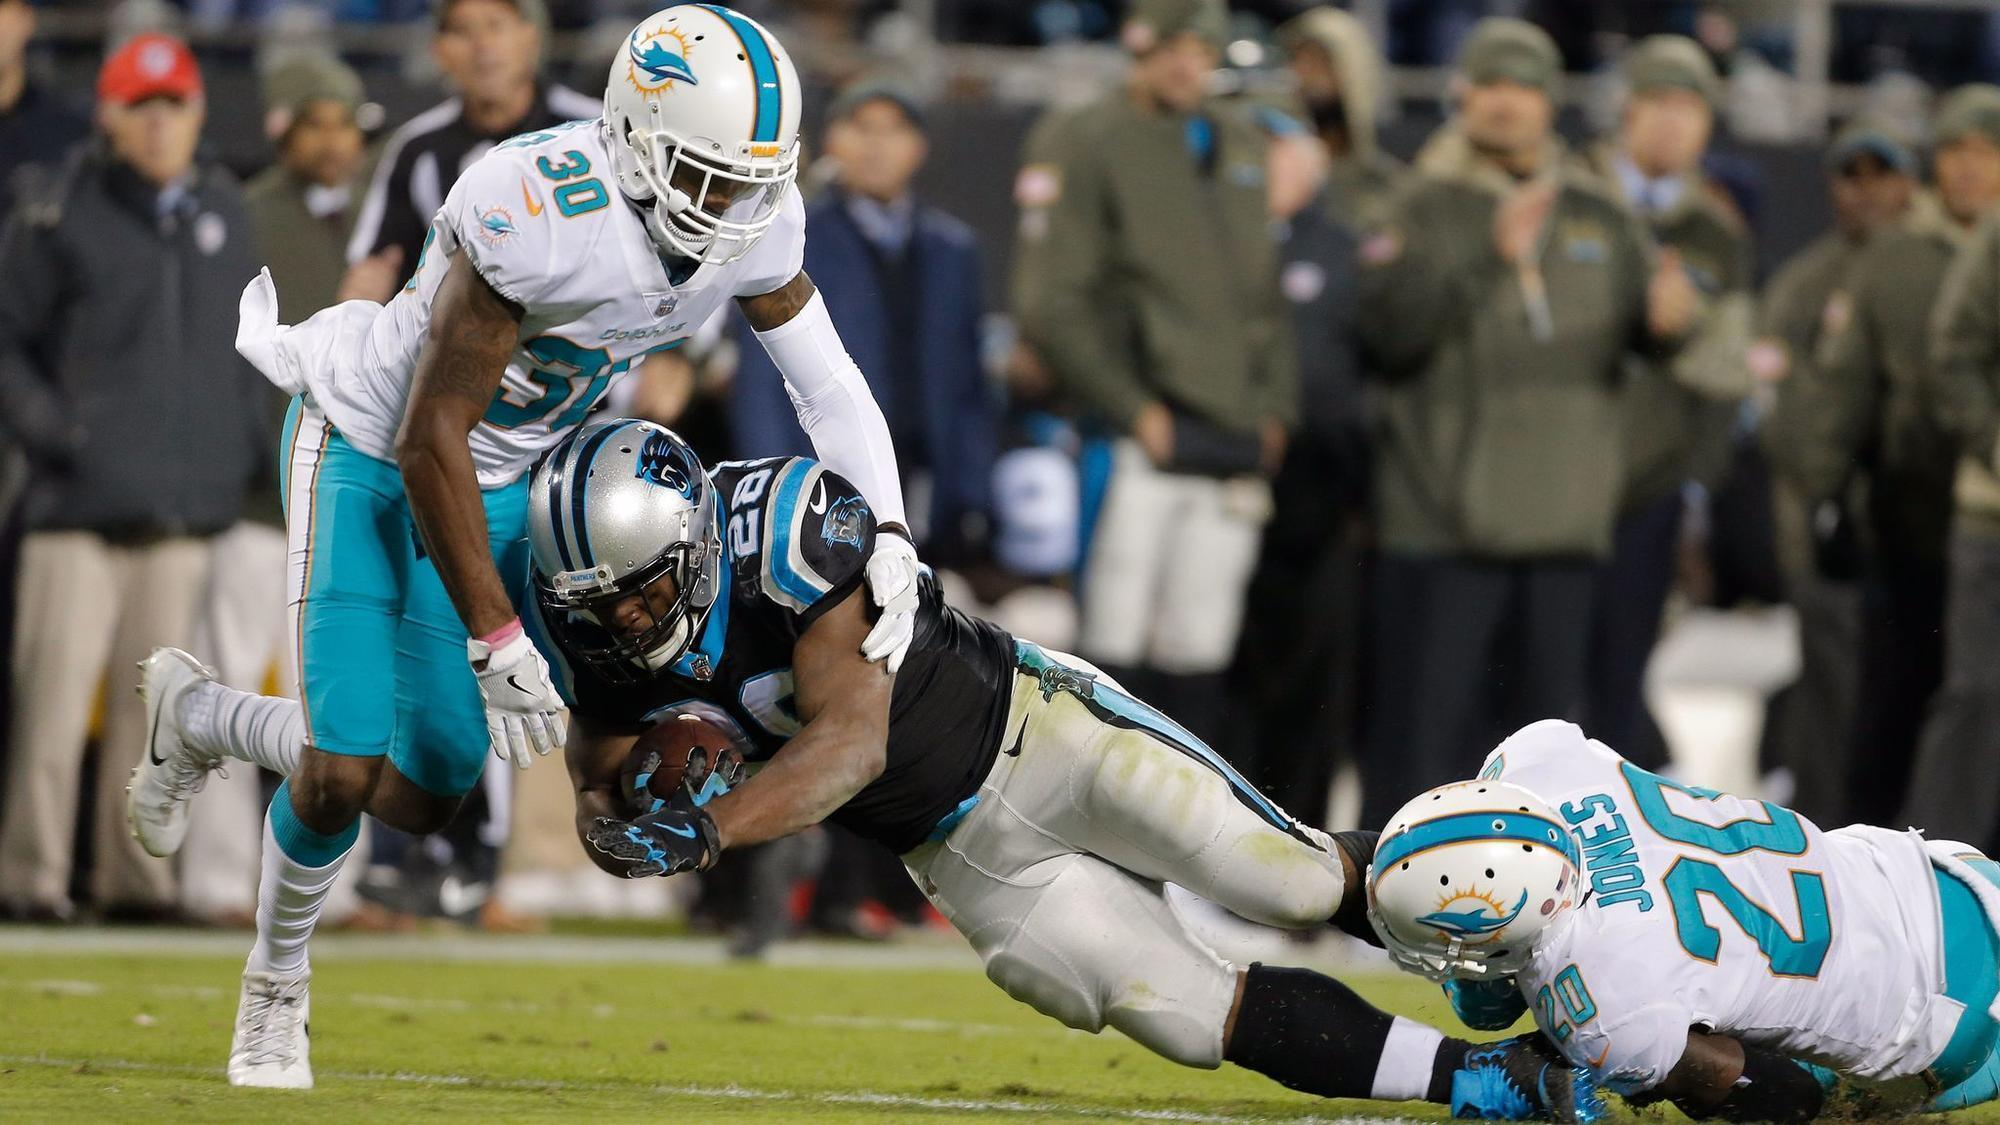 Fl-sp-dolphins-notes-20171209